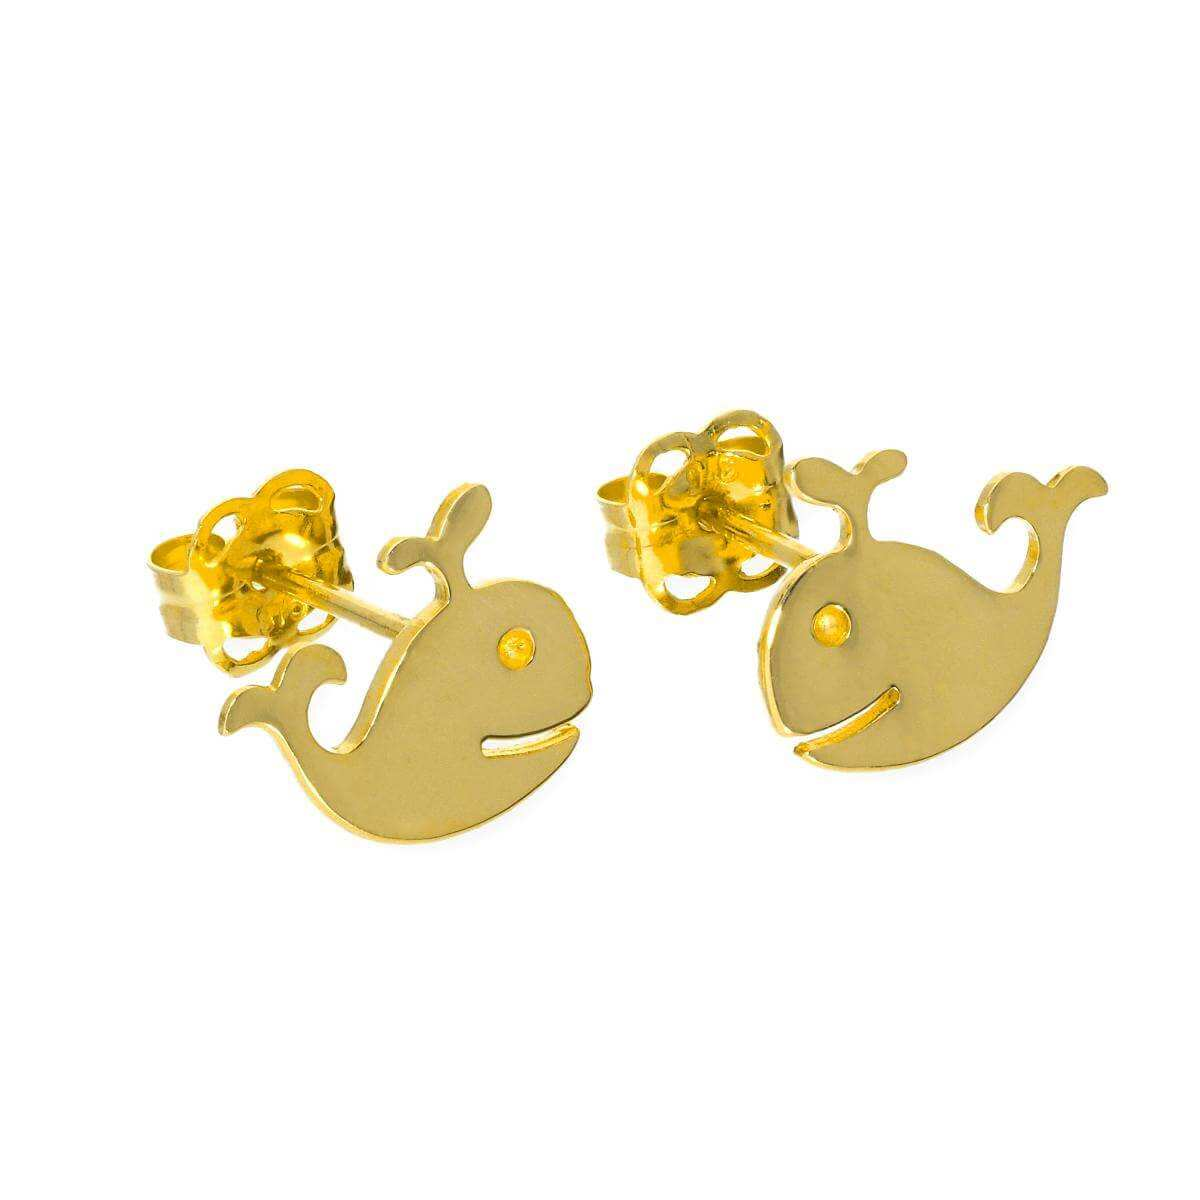 9ct Gold Whale Stud Earrings